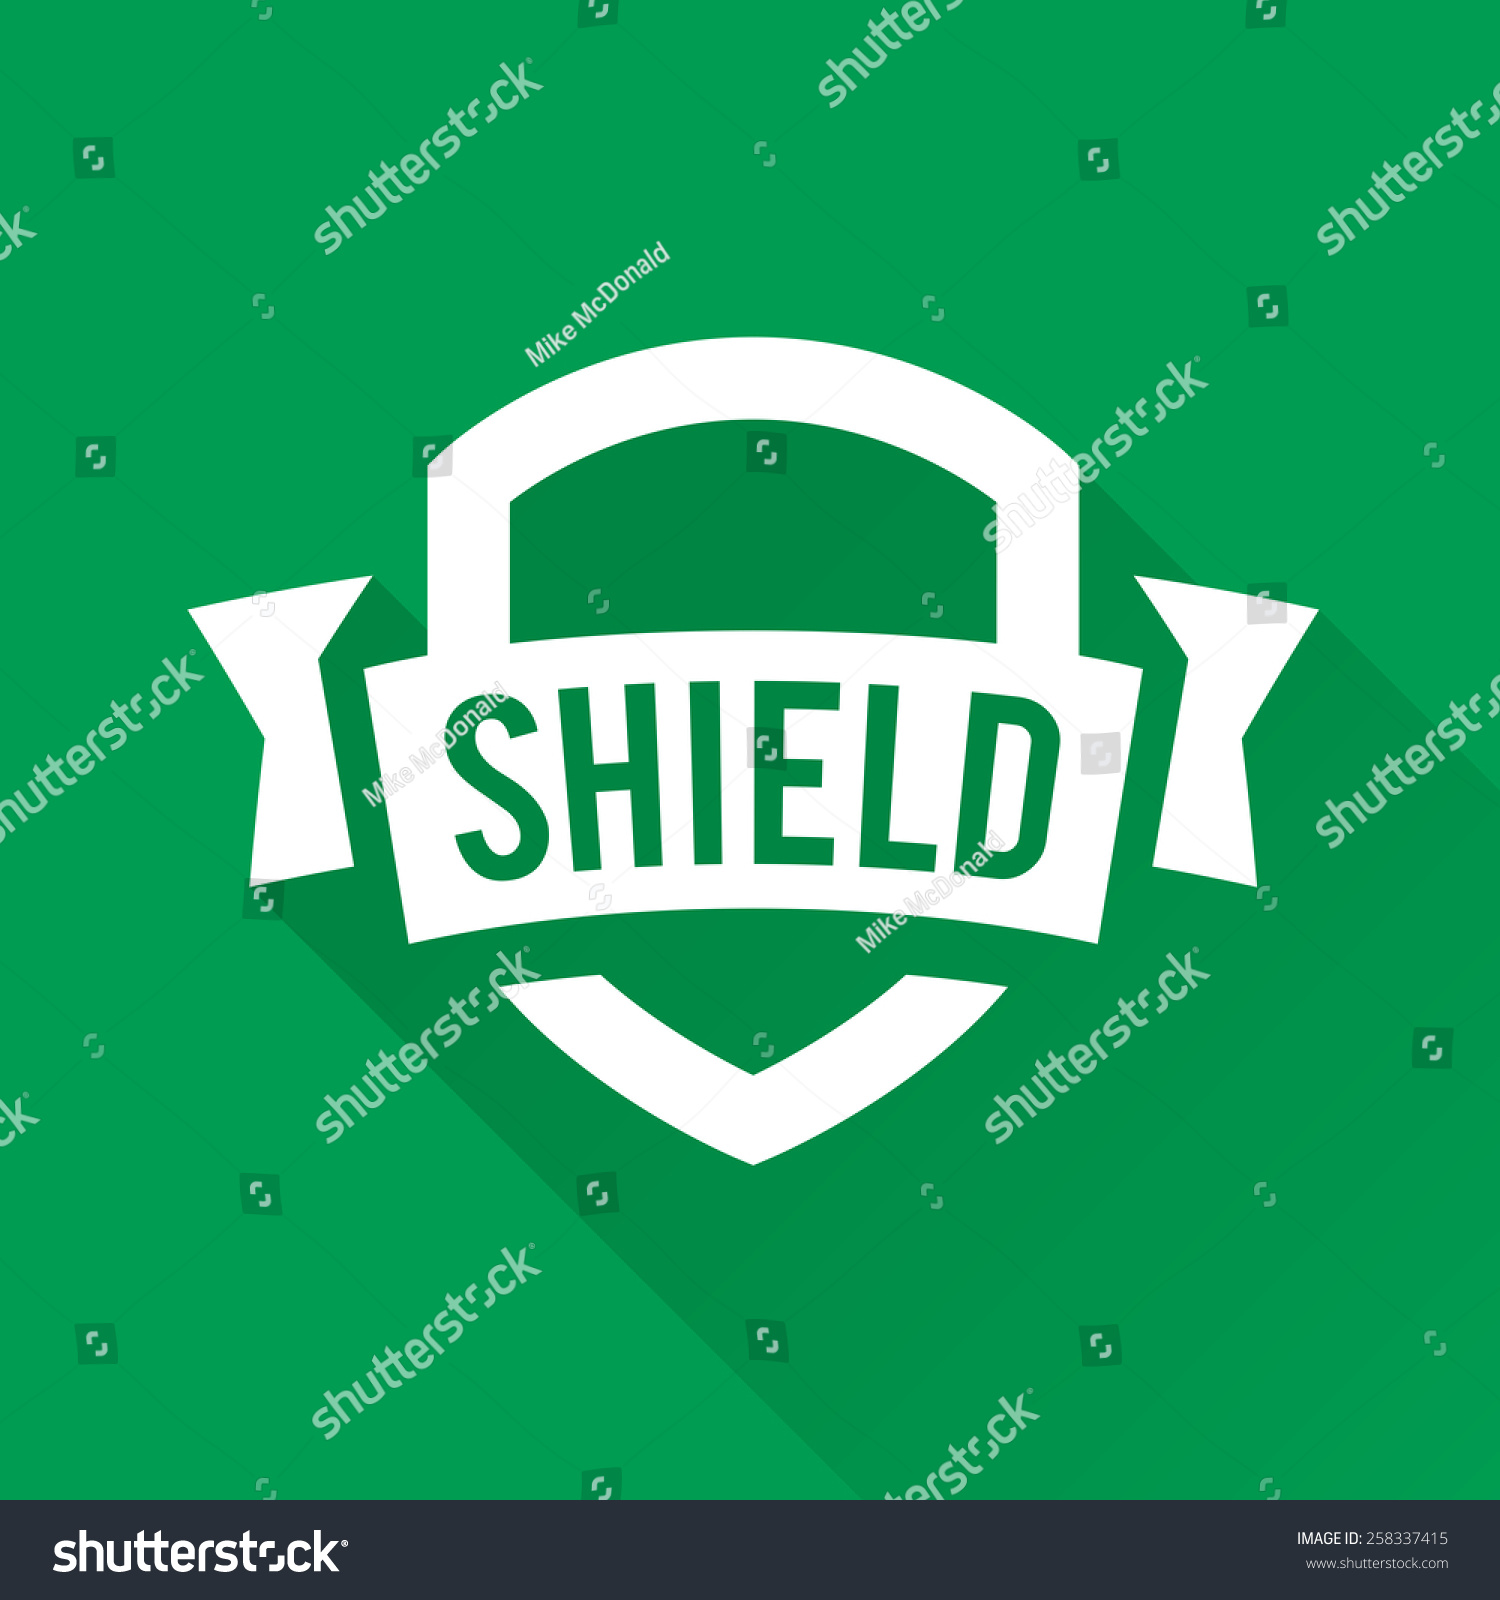 stock-vector-shield-graphic-with-banner-and-text-logo-design-258337415